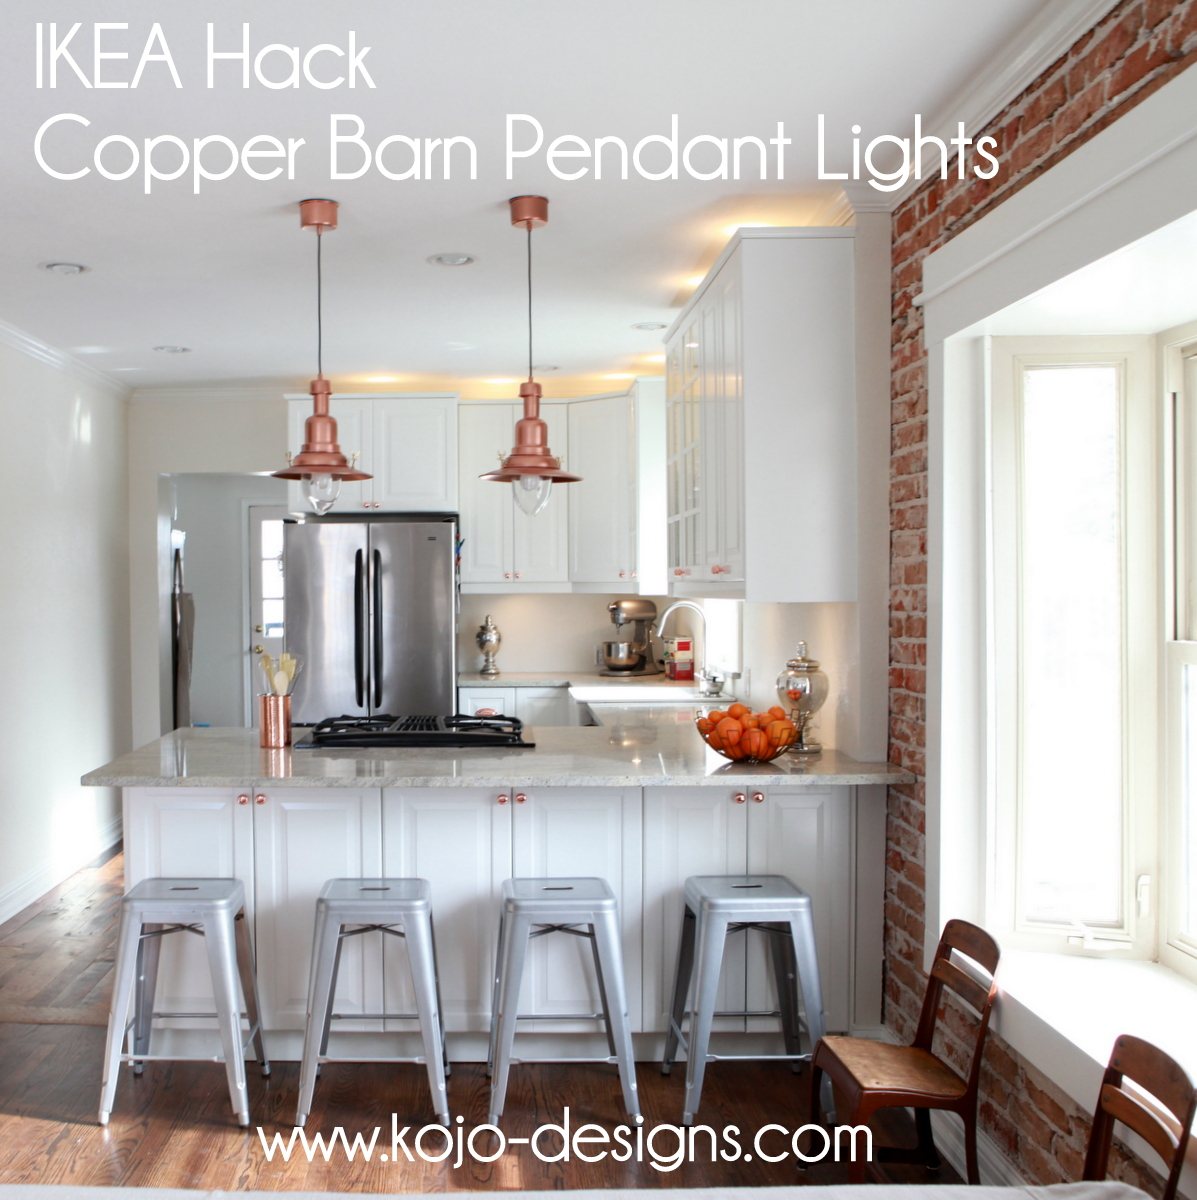 IKEA hack- how to turn an OTTAVA light into a copper barn pendant light